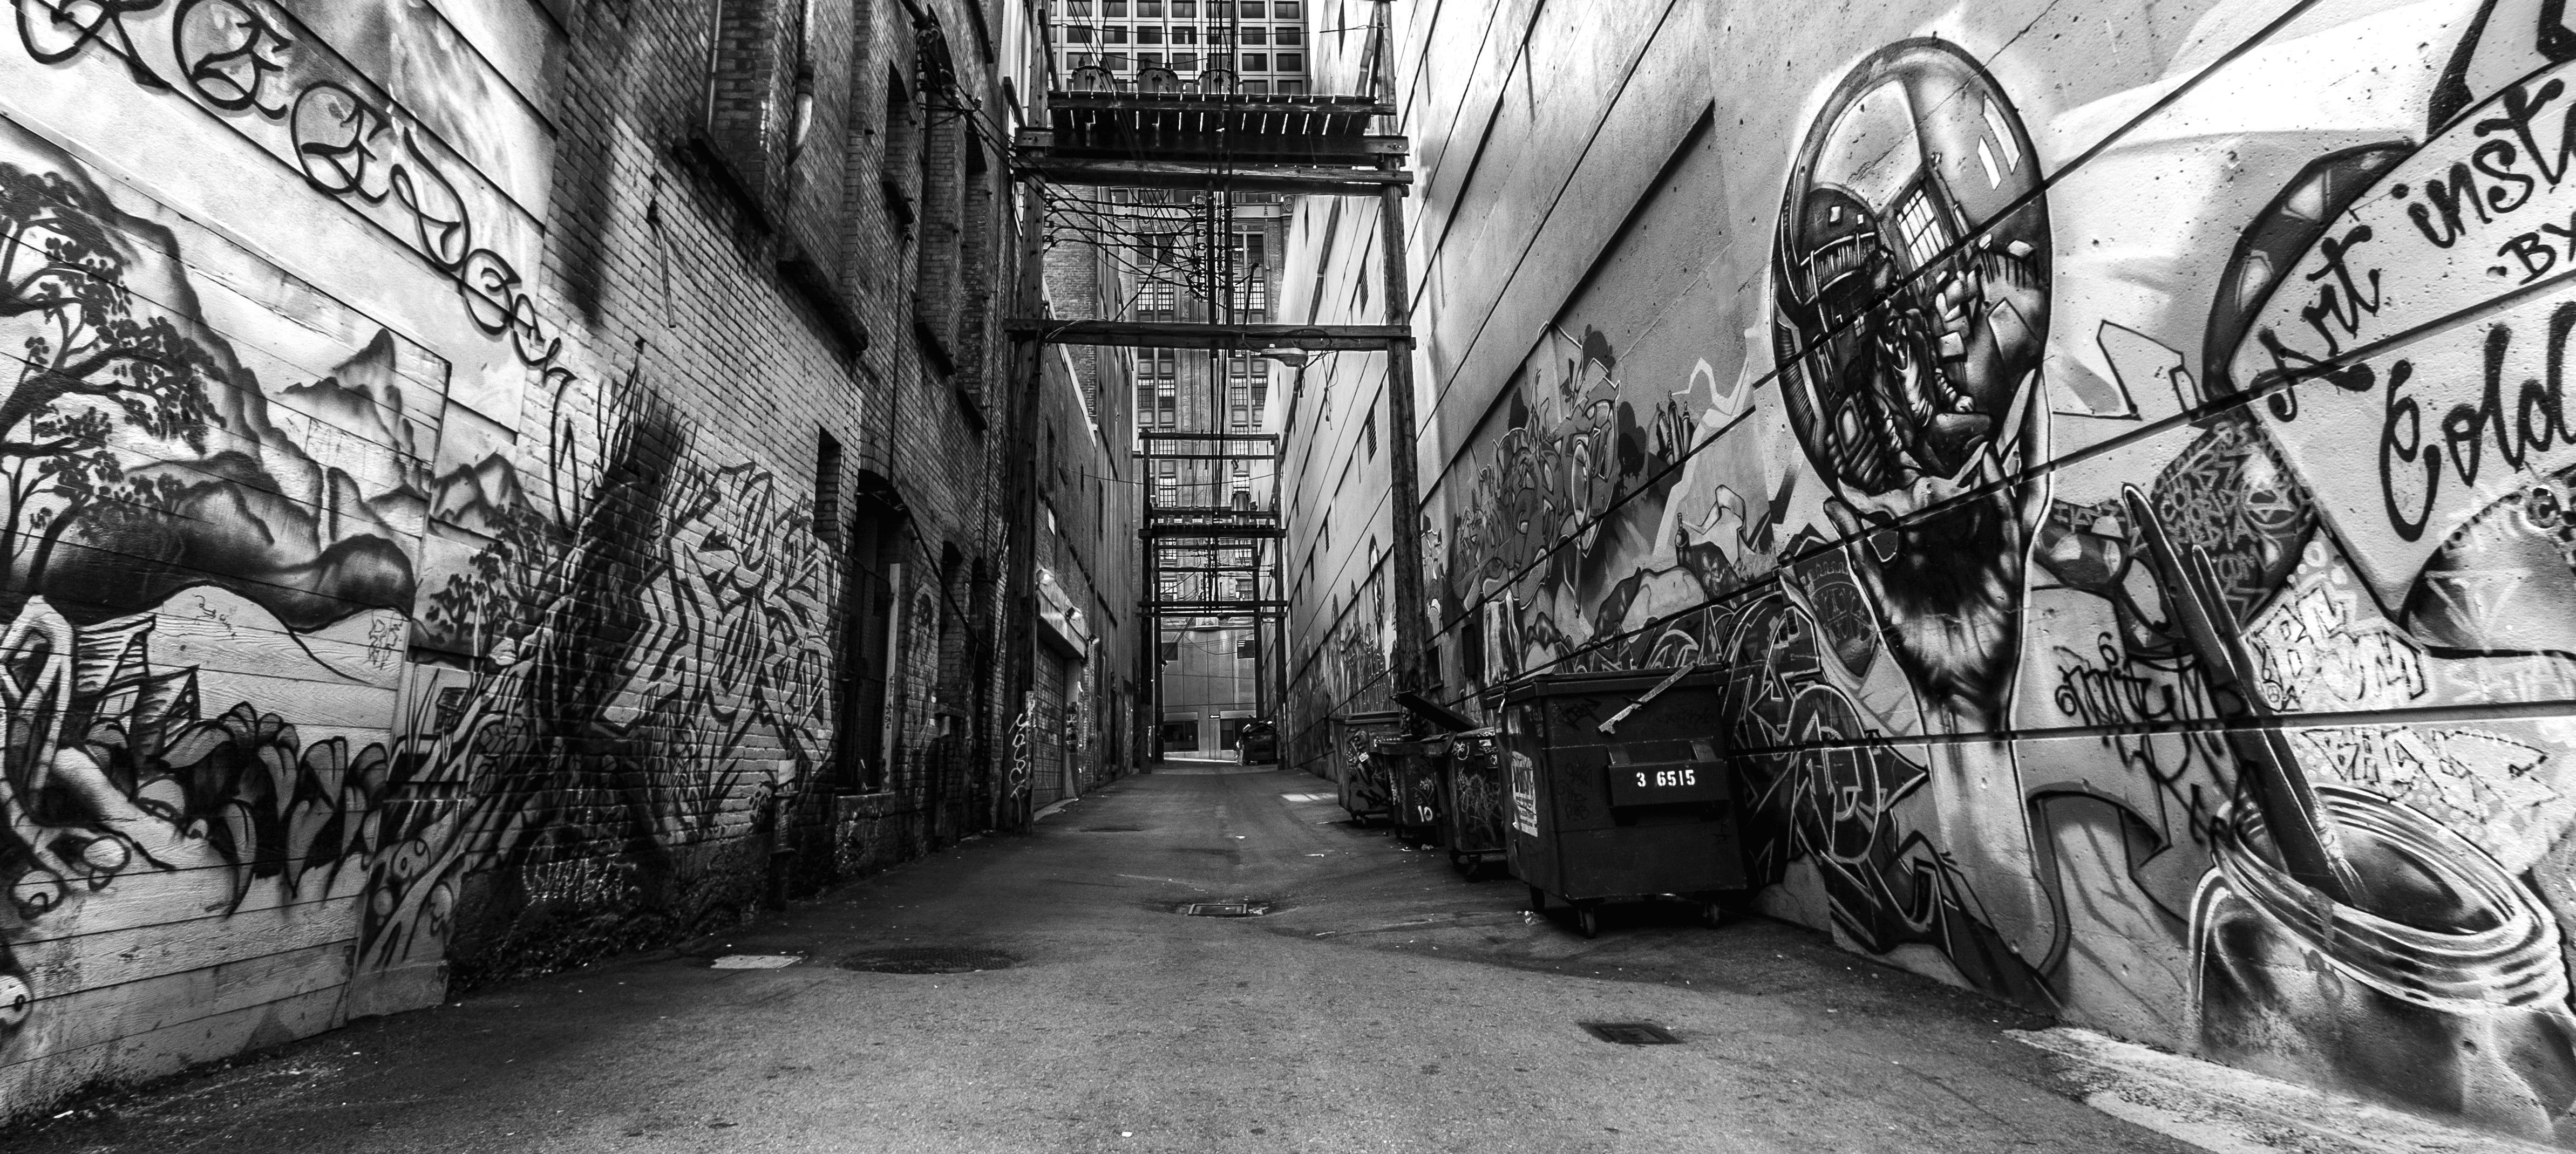 Graffiti Black And White Backgrounds Desktop Wallpapers